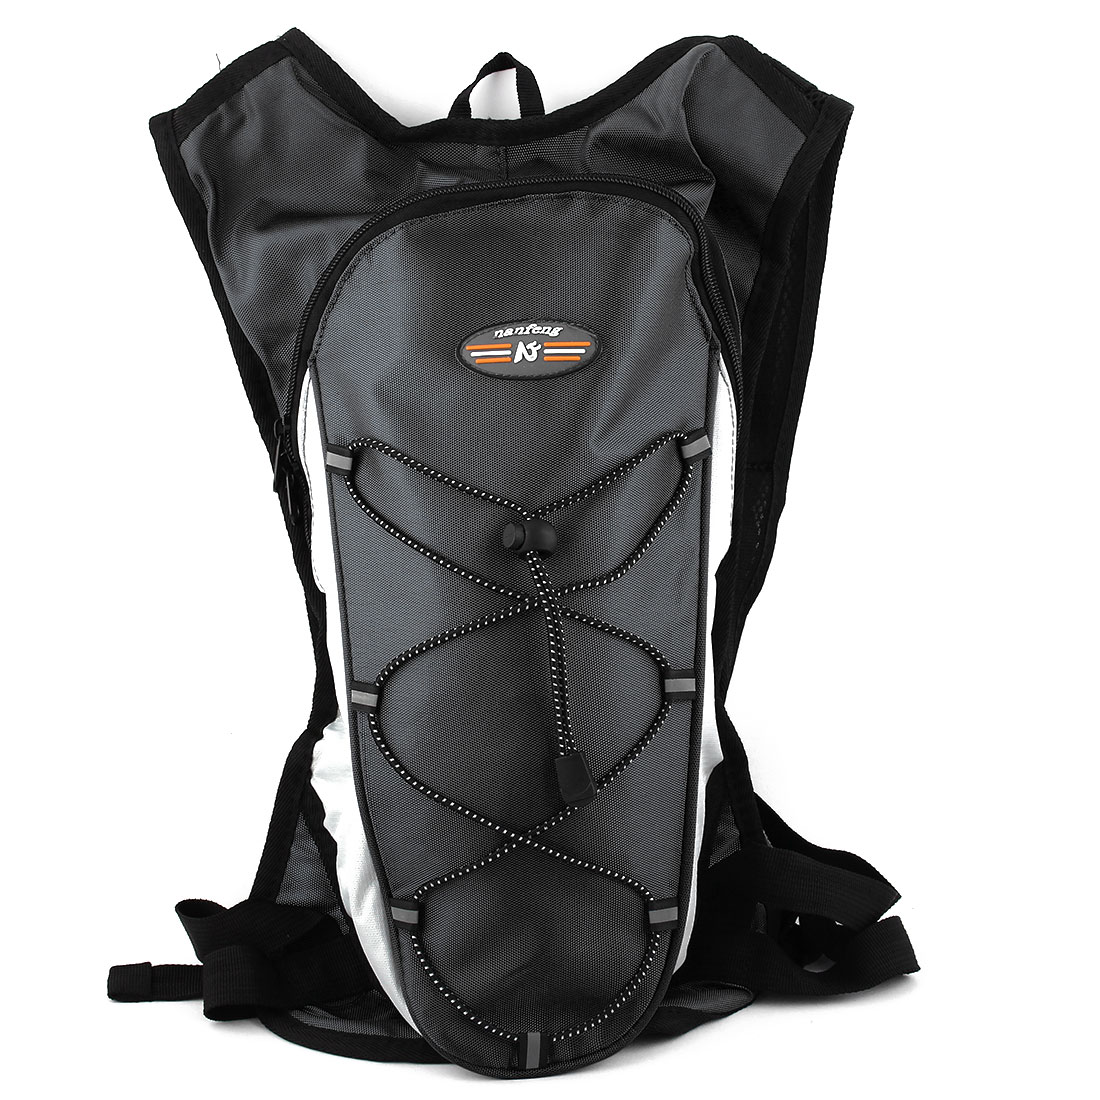 Outdoor Hiking Camping Cycling Water Bladder Bag Hydration Backpack Pack Black by Unique-Bargains